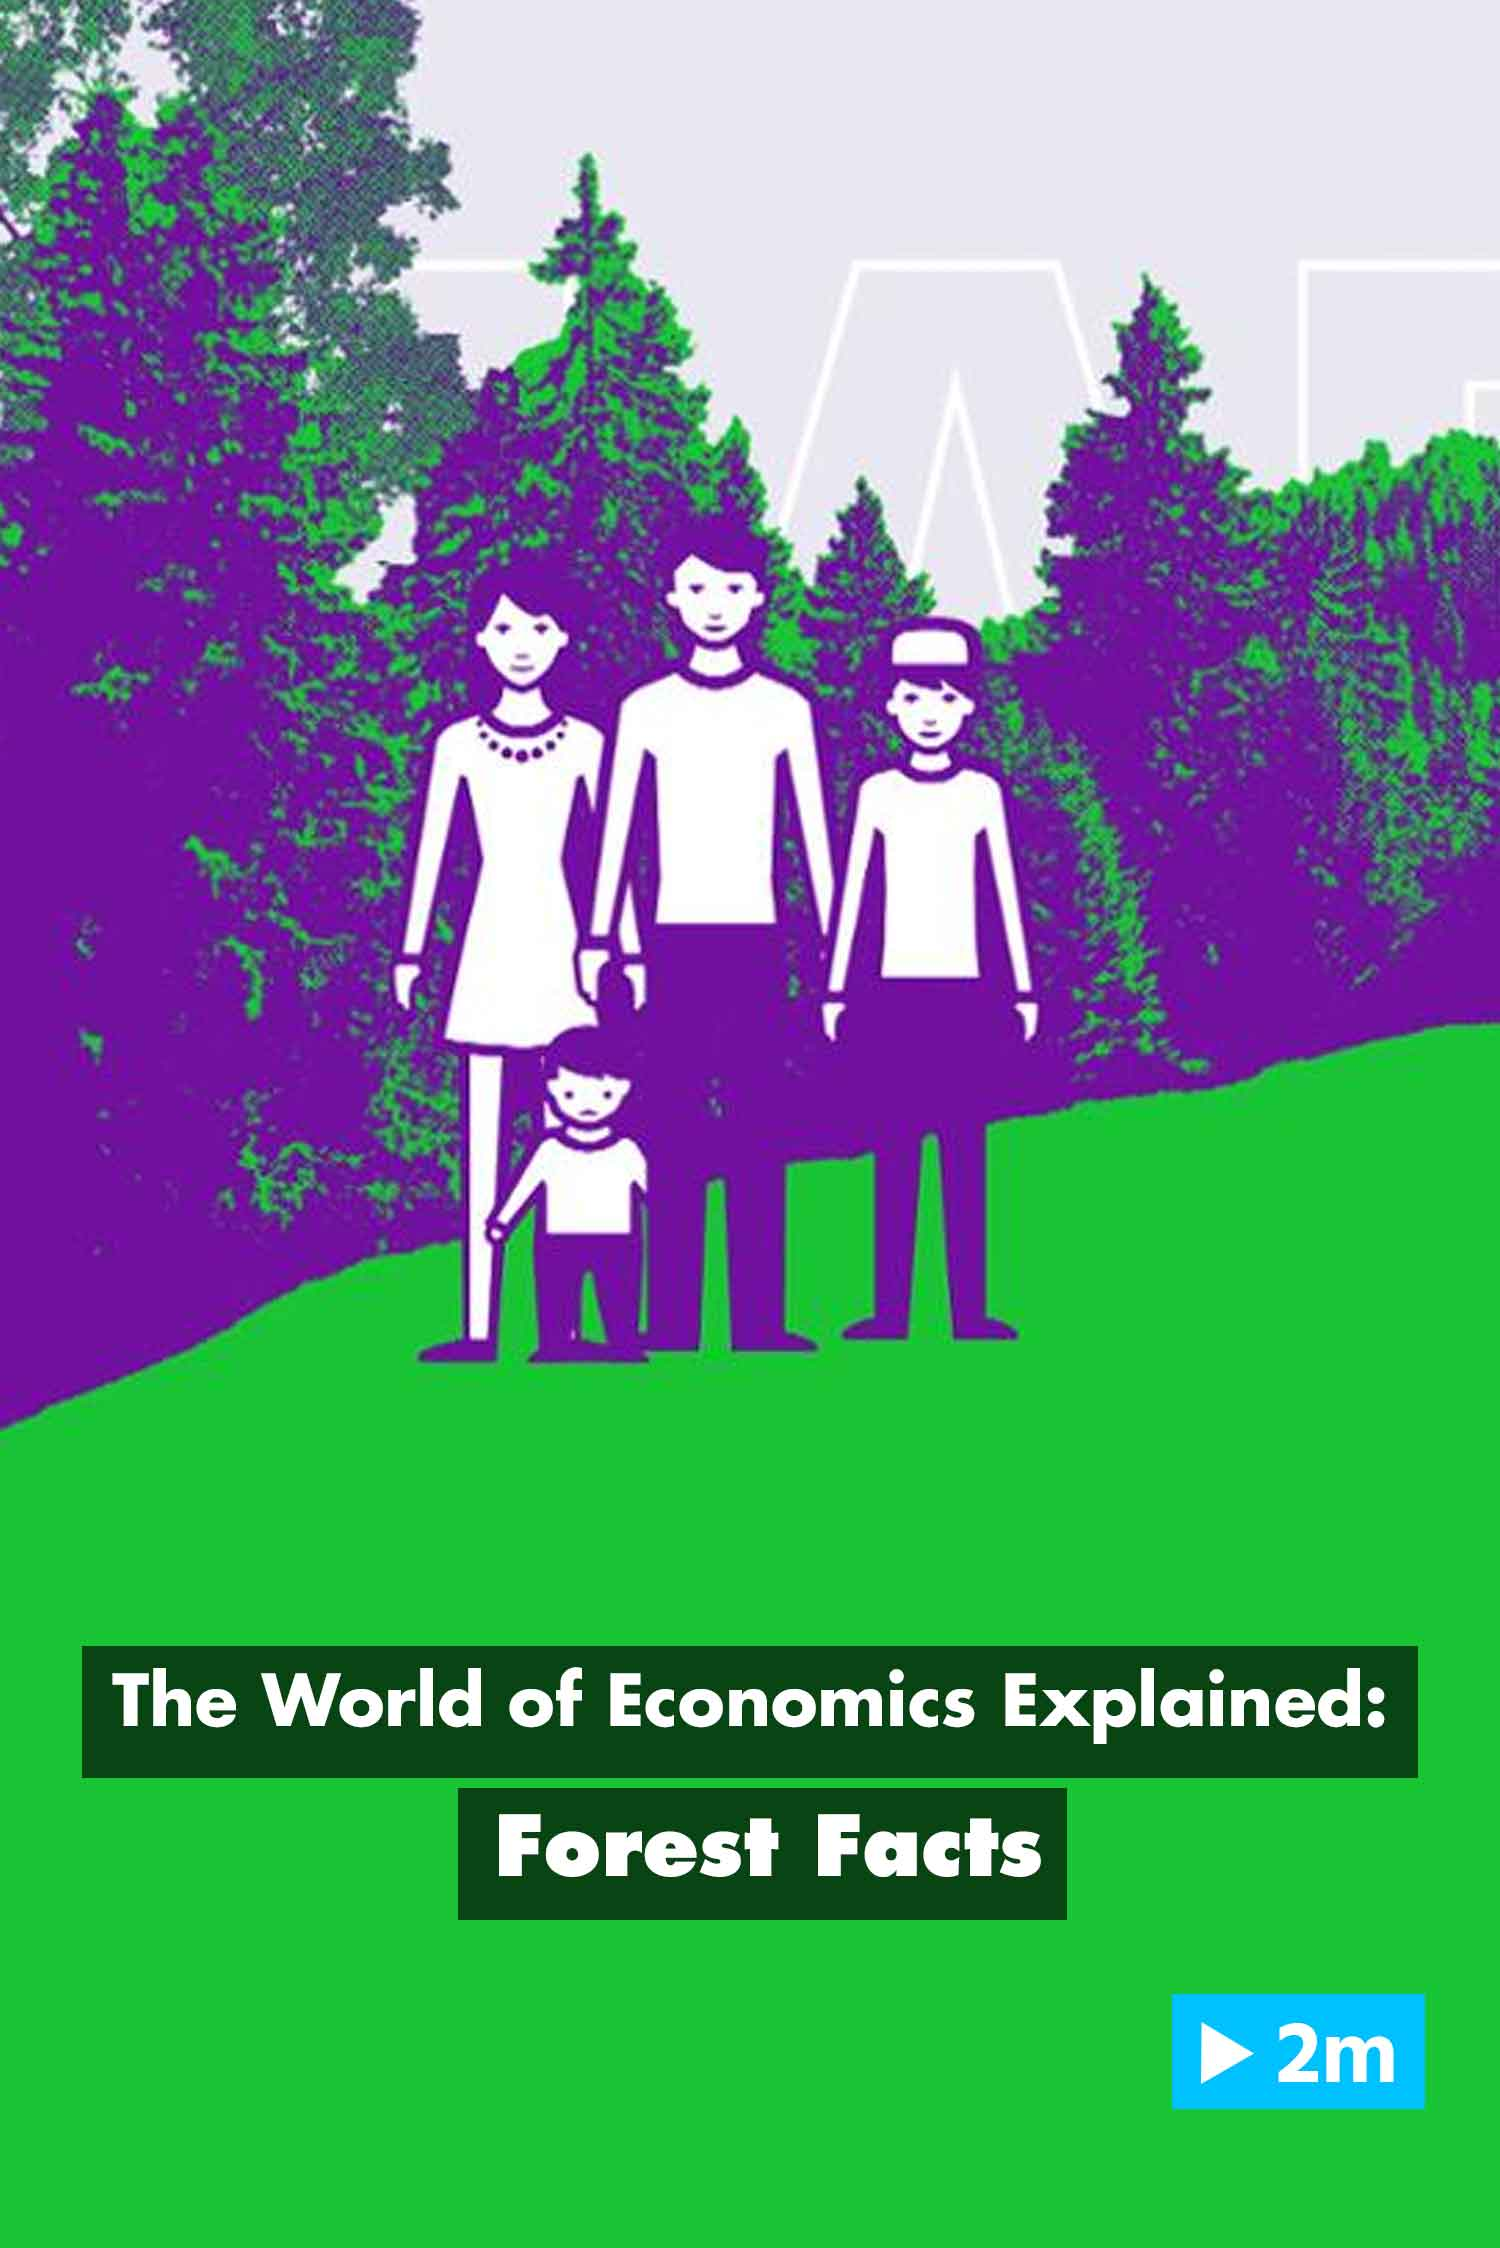 The World of Economics Explained: Forest Facts